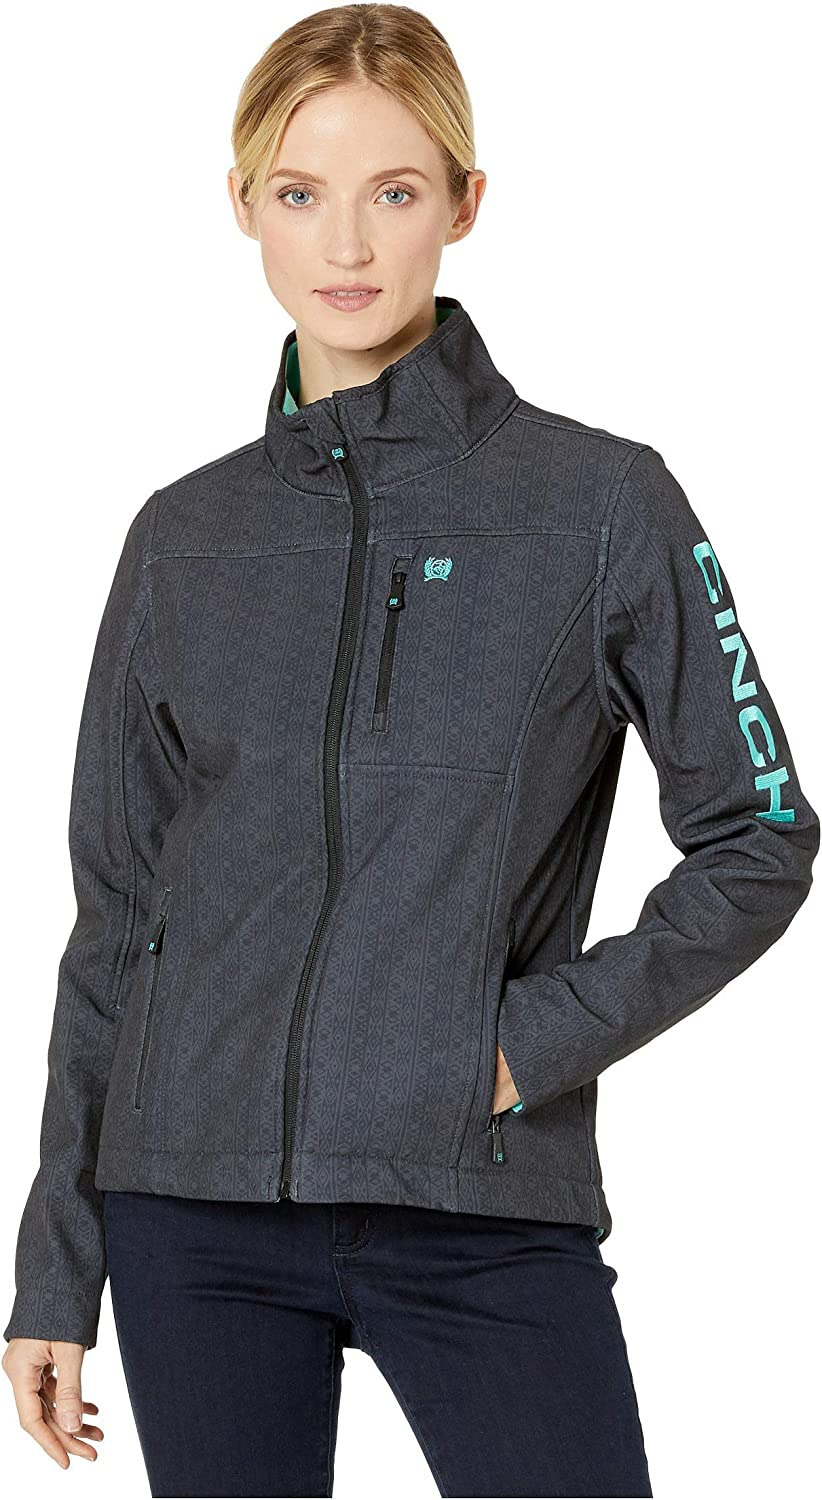 Cinch womens Printed Bonded Concealed Carry Jacket